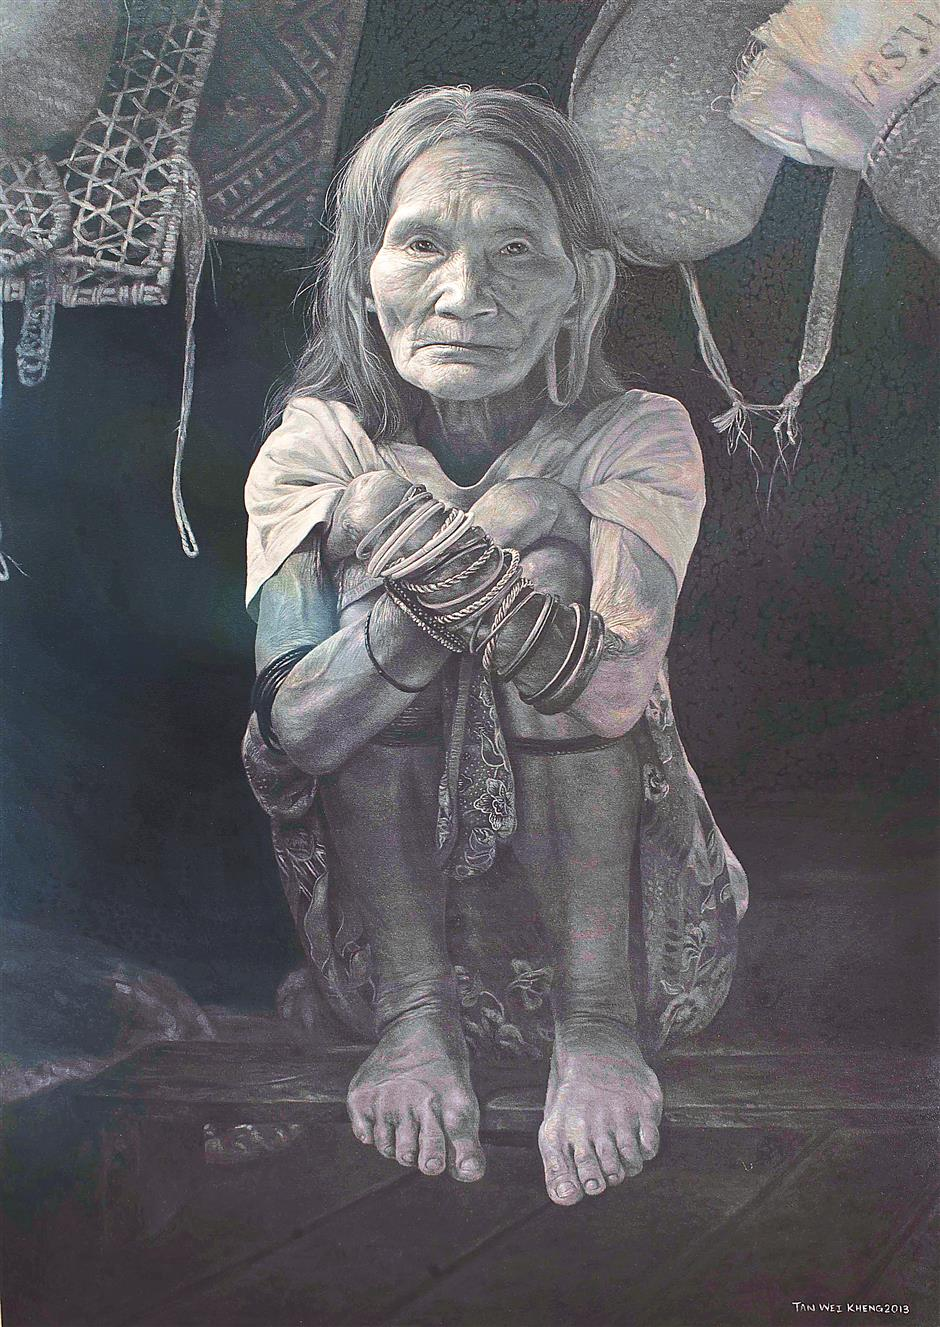 1 u2018She is a lovely woman (from Ulu Limbang, Sarawak). She is very kind. Every time I visit her house, she comes to shake my hand and give me a hug,u2019 says artist Tan Wei Kheng about Sigang Kesei (oil on canvas, 2013), who has been immortalised as one of his paintings in the Language Of The Jungle exhibition in Kuala Lumpur.2 Tan Wei Kheng painted young Penan brothers Jesua and Ruan Gasi in Another Jungle (oil on canvas, 2014), a poignant piece about the future and survival of this indigenous minority group.